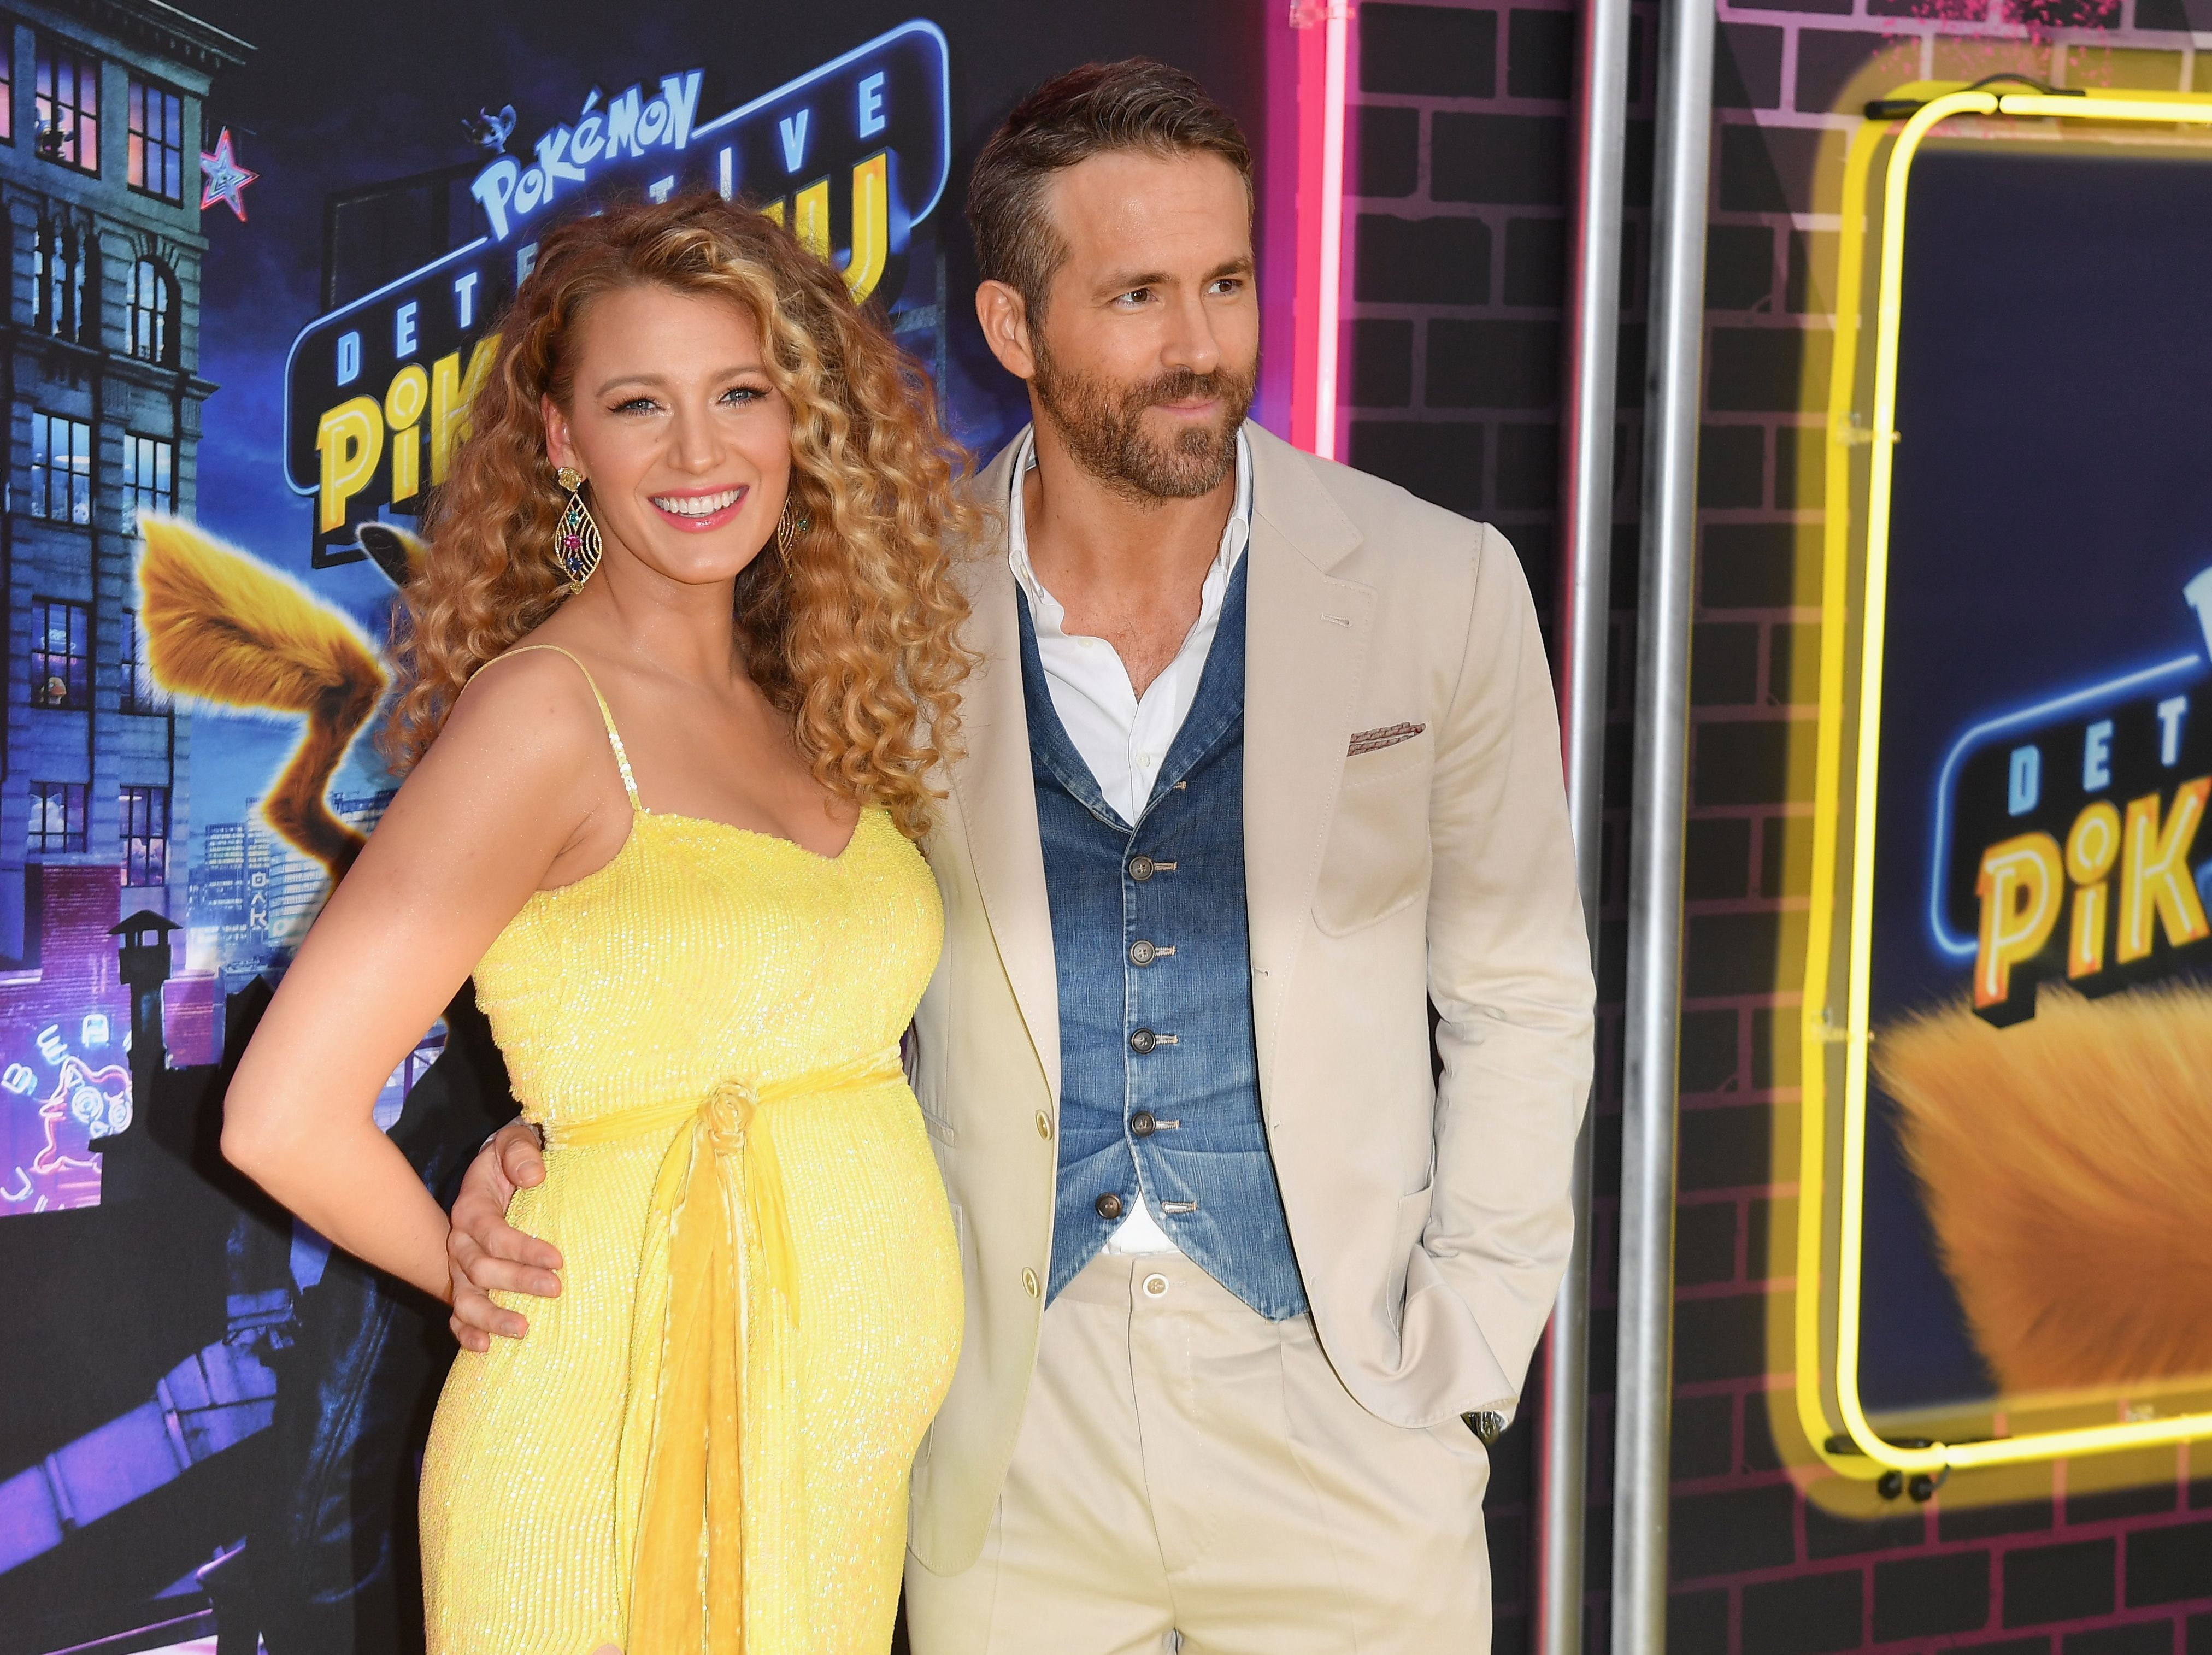 Did Blake Lively Have Her Baby Yet Or Is She Still Pregnant?